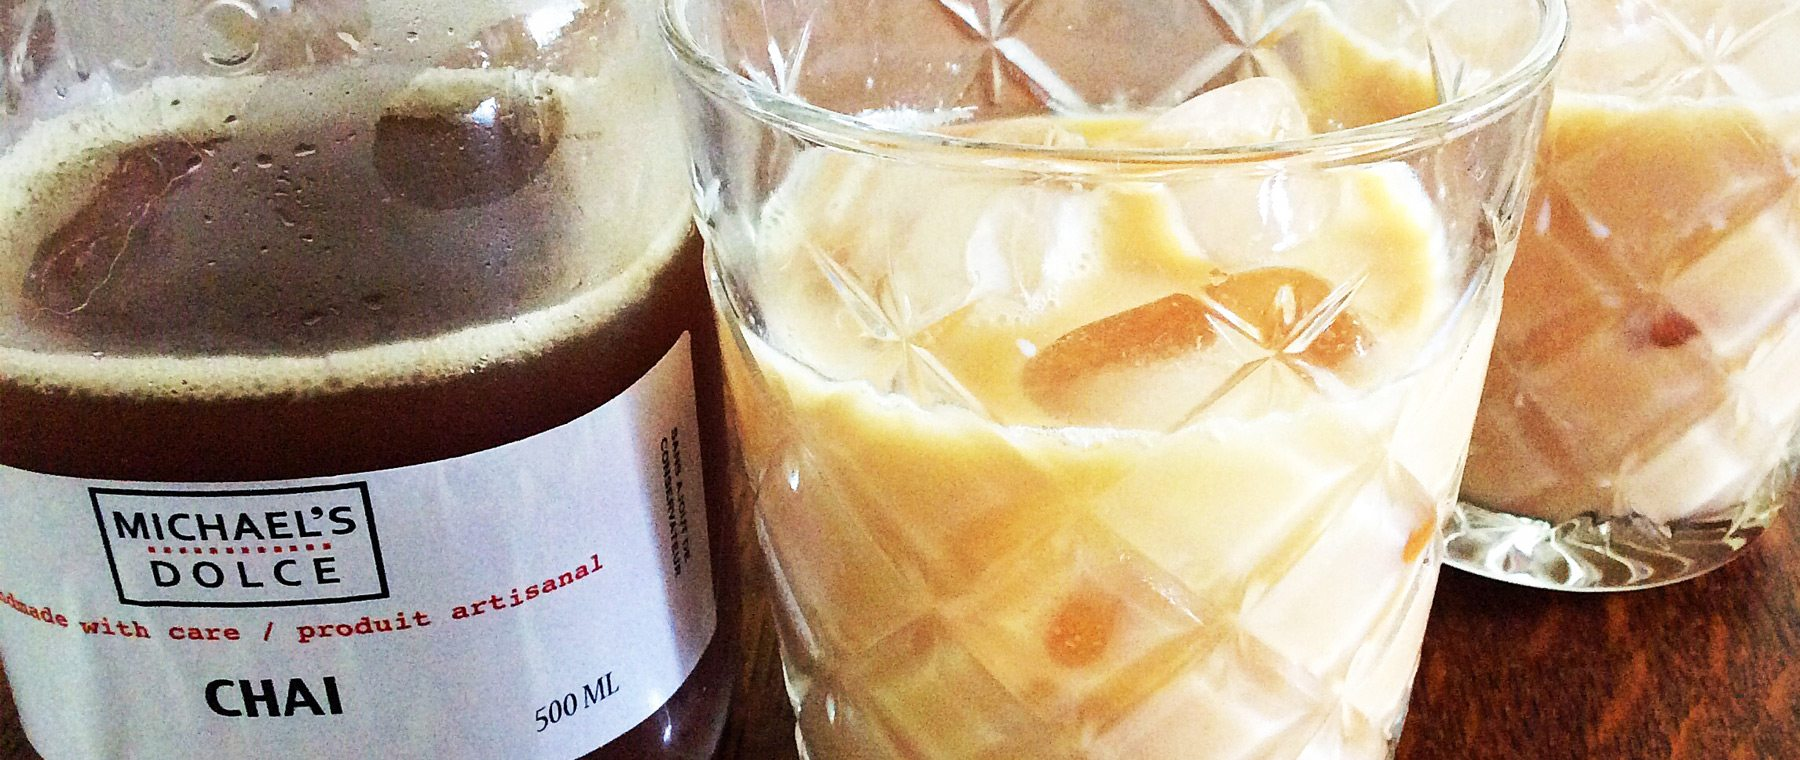 Icy chai lattes in a jar — Michaelsdolce's tea now available all week